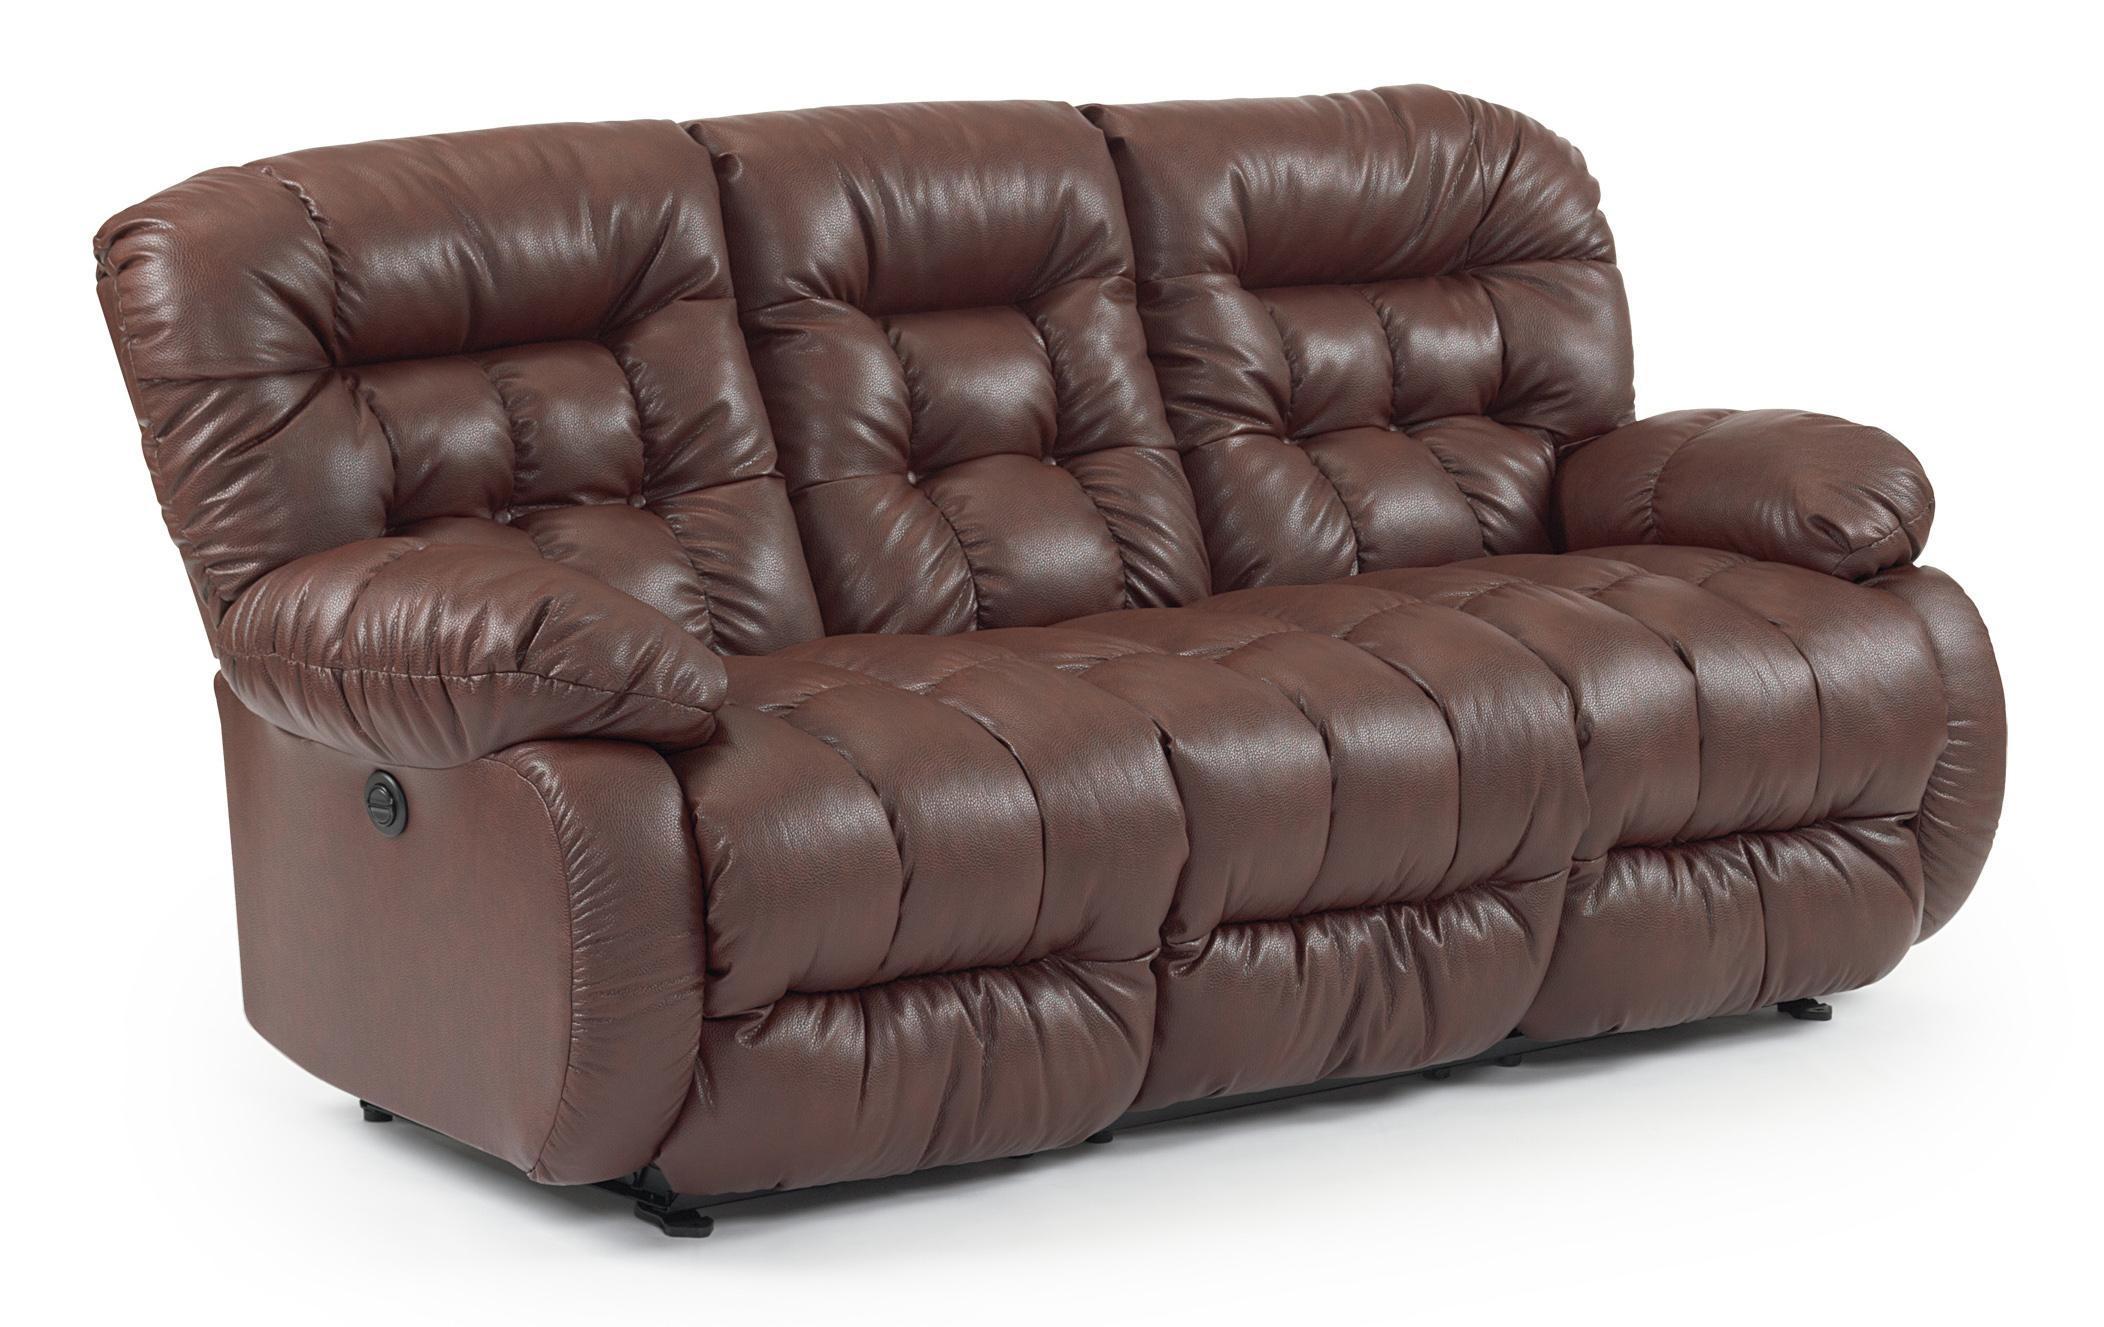 best sofa recliner camel back slipcover pattern home furnishings plusher space saver reclining